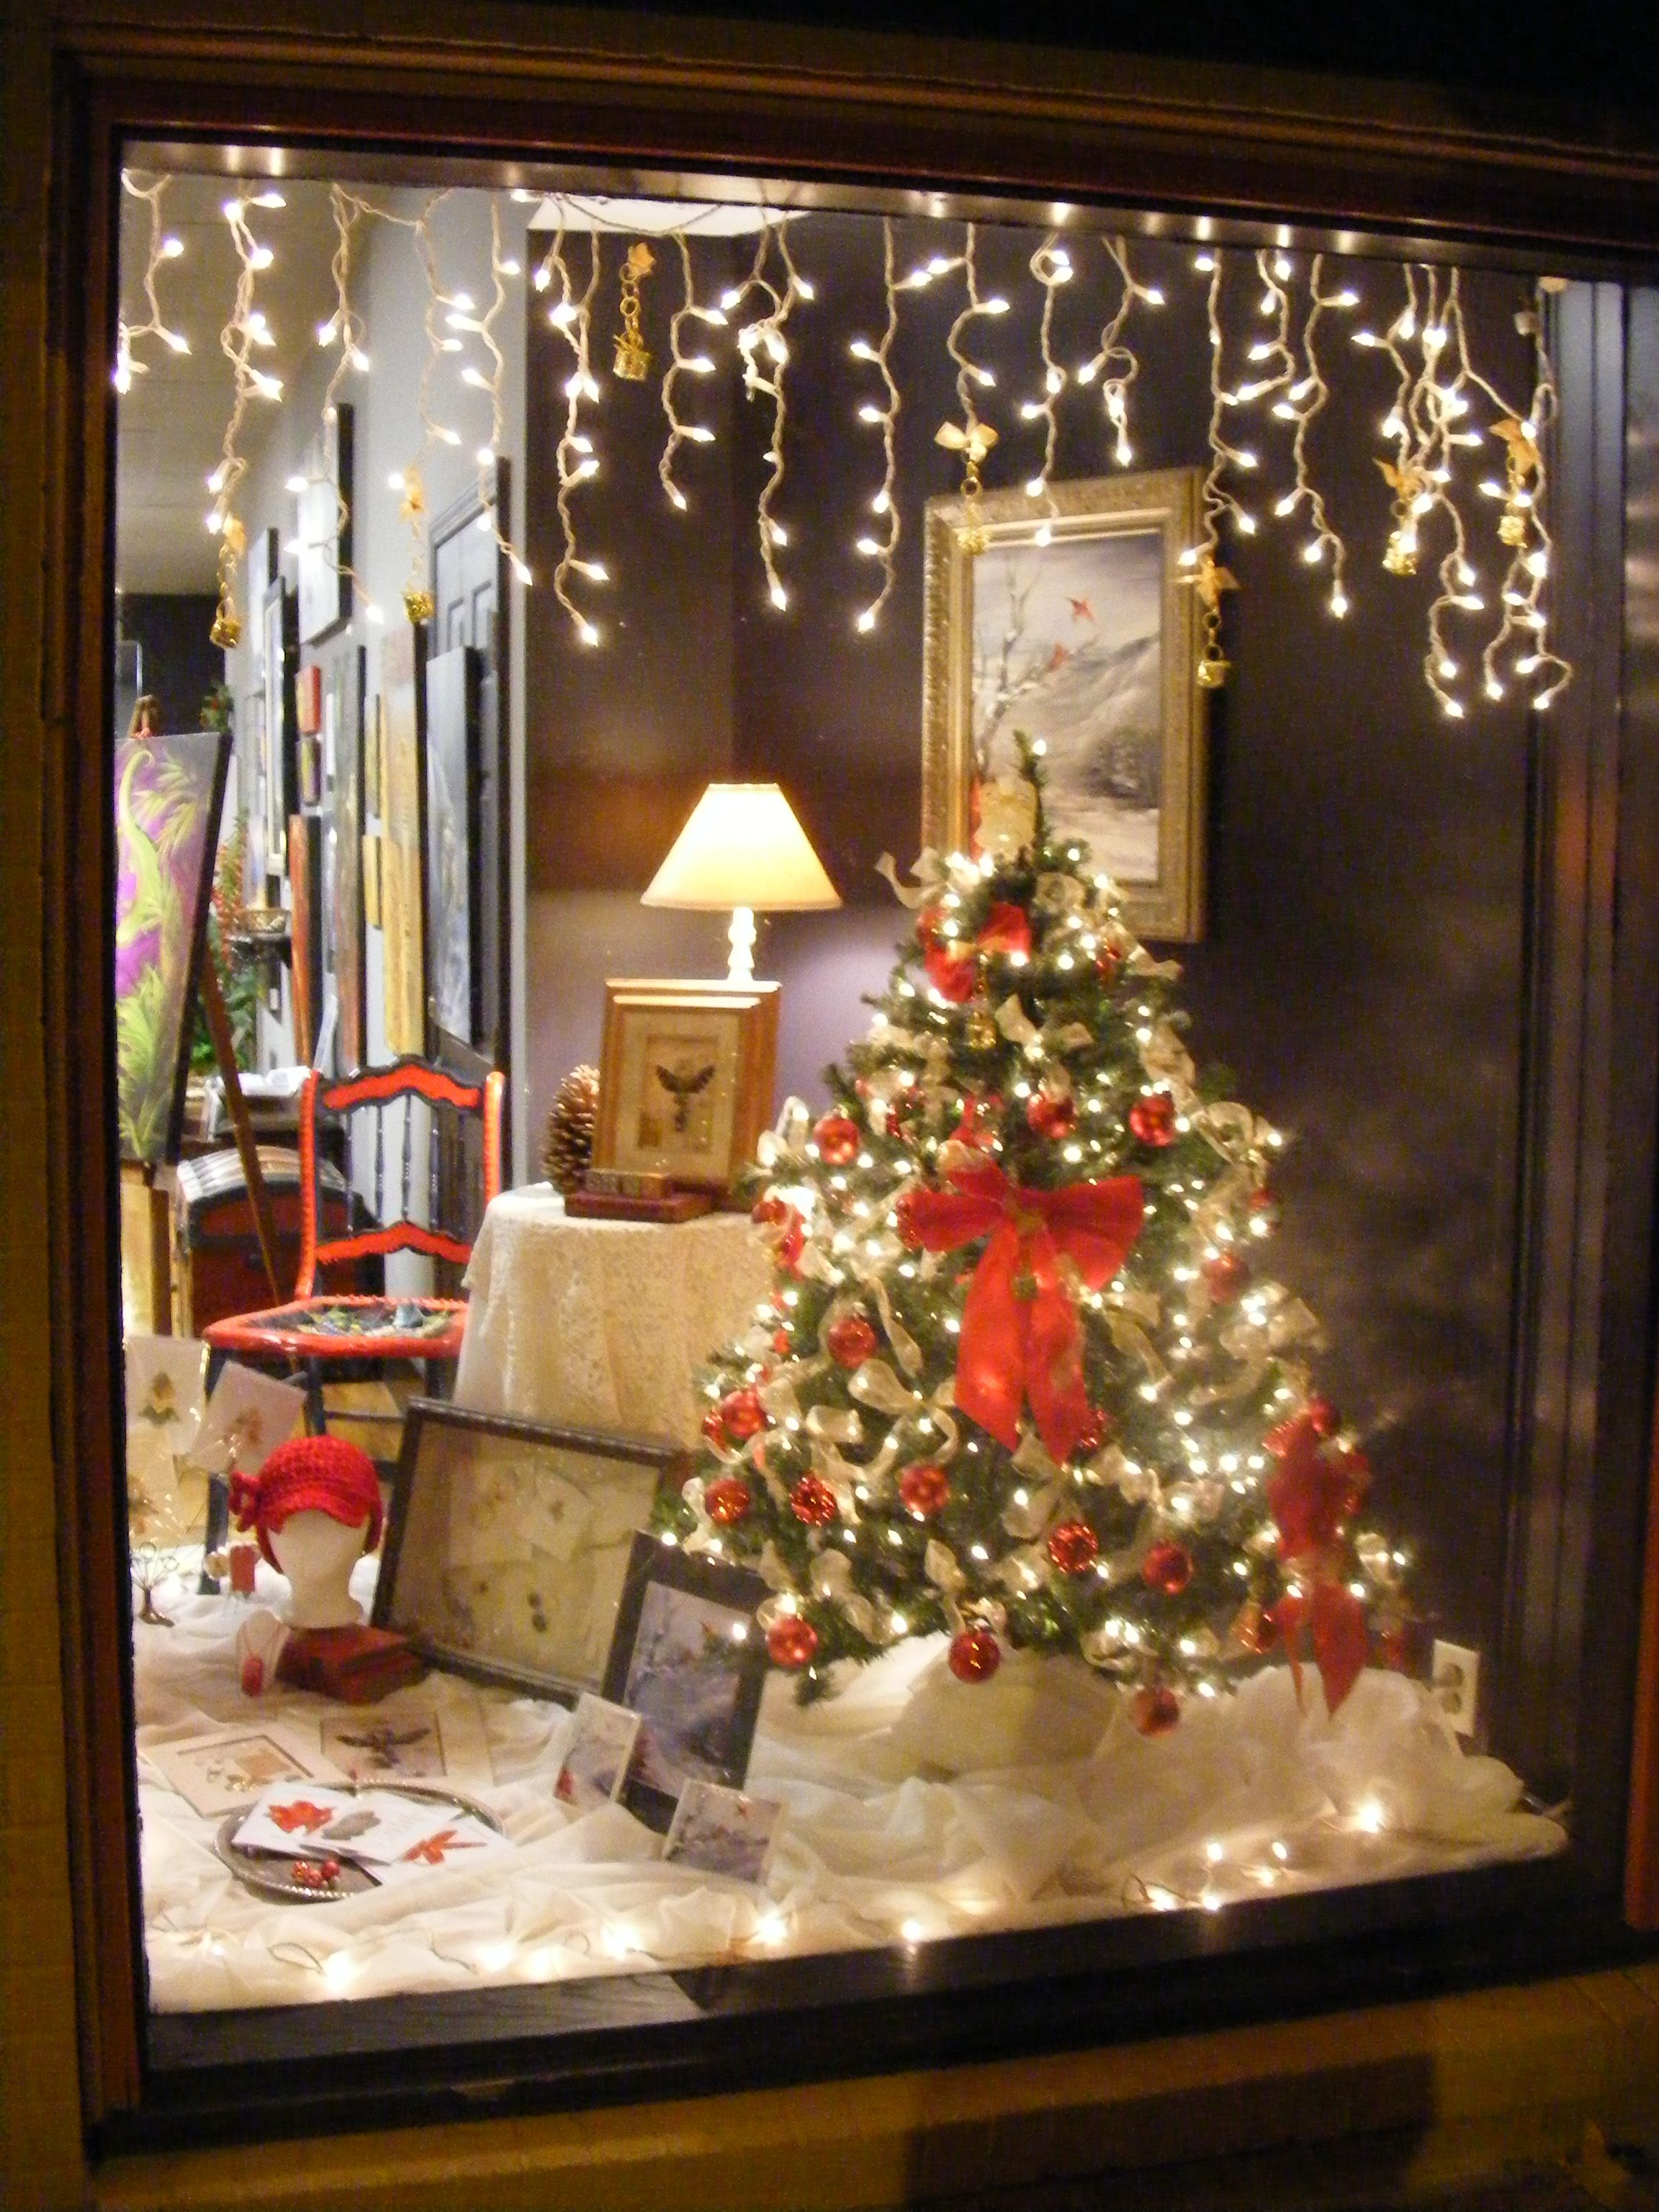 Christmas store window decorations - Our Christmas Window Display 2011 At Artistic Treasures